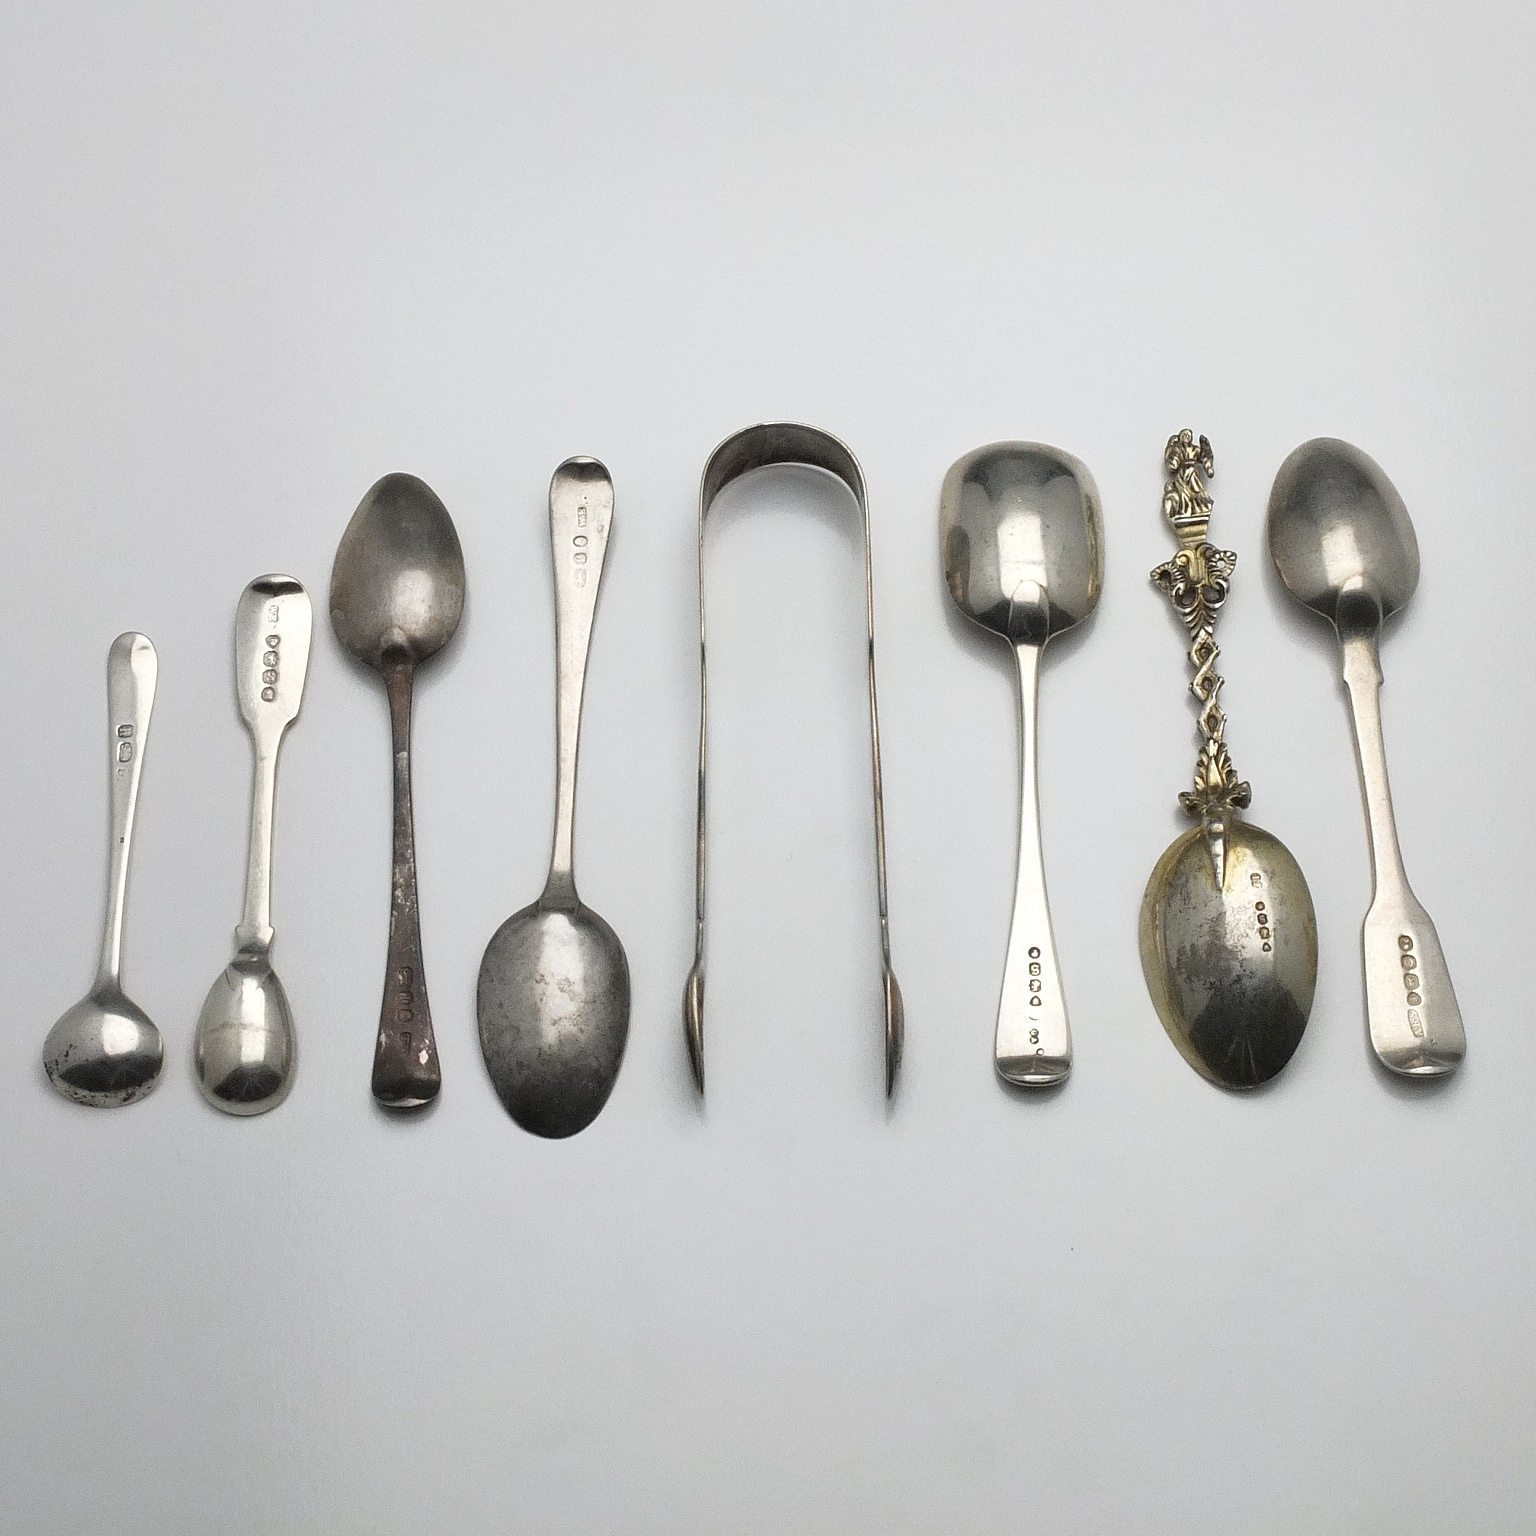 'Crested Sterling Silver Pair of Sugar Tongs, Five Sterling Teaspoons and Two Sterling Condiment Spoons'